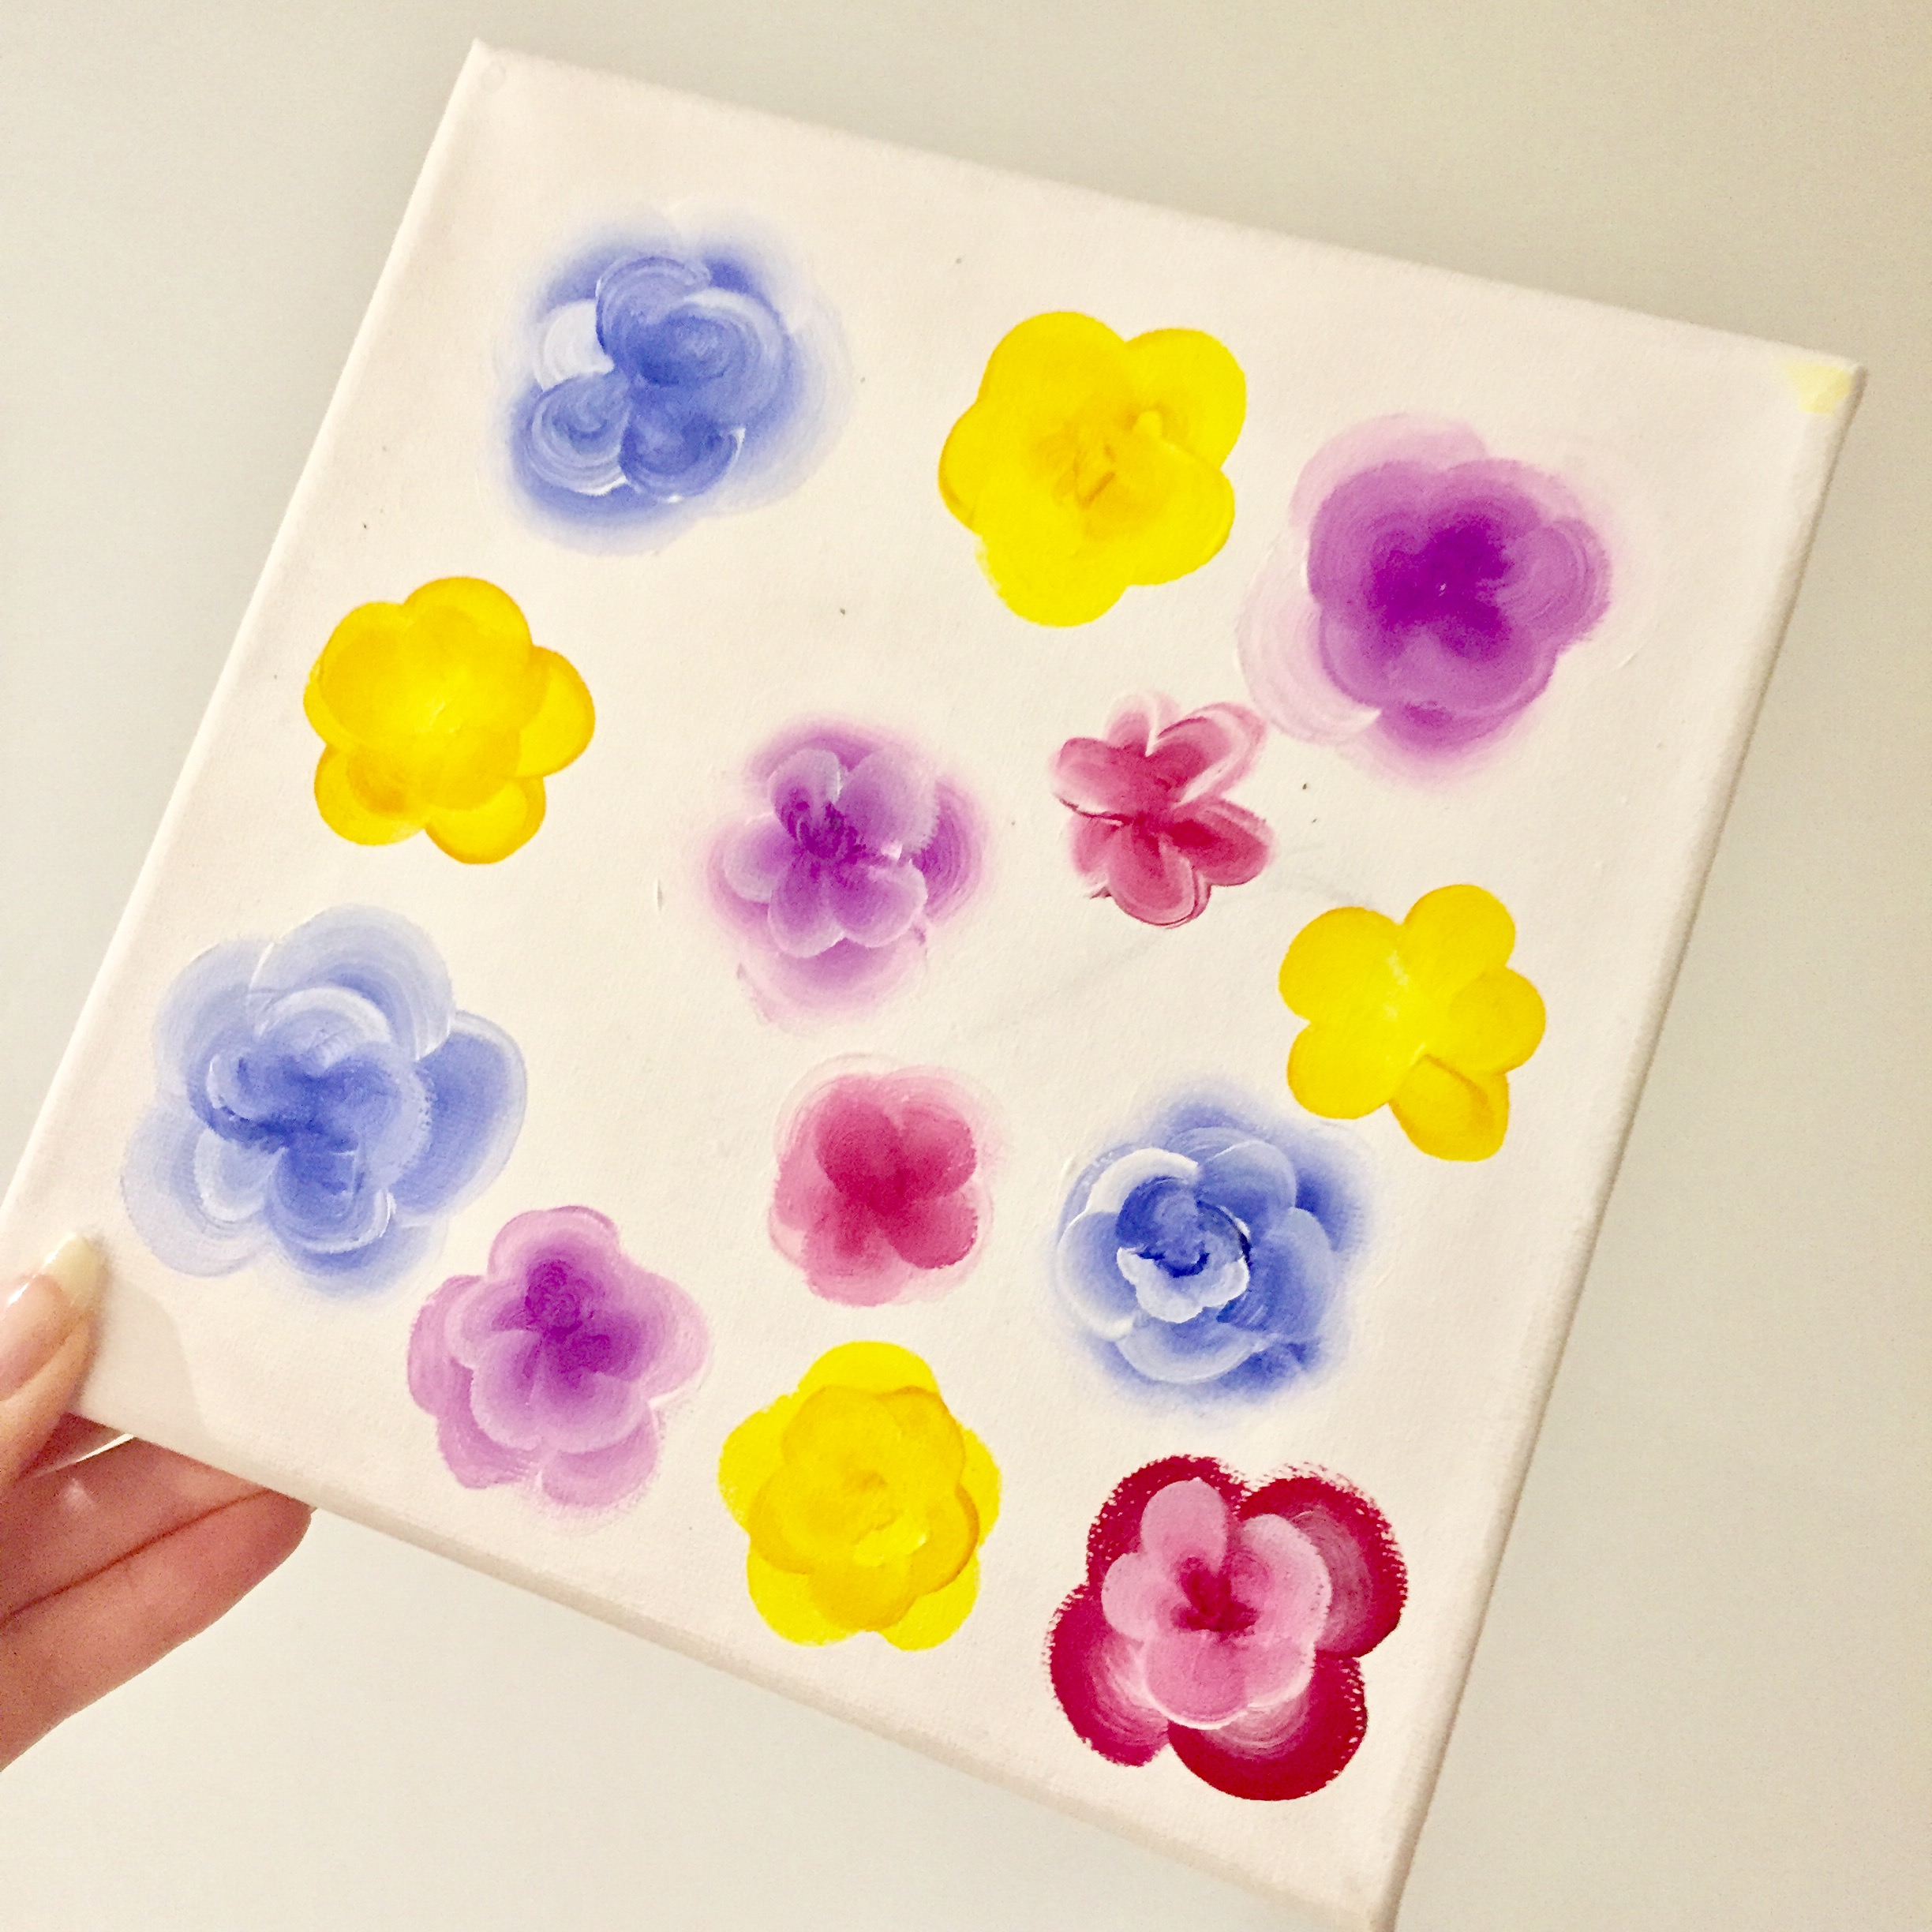 Flower paint canvas holding